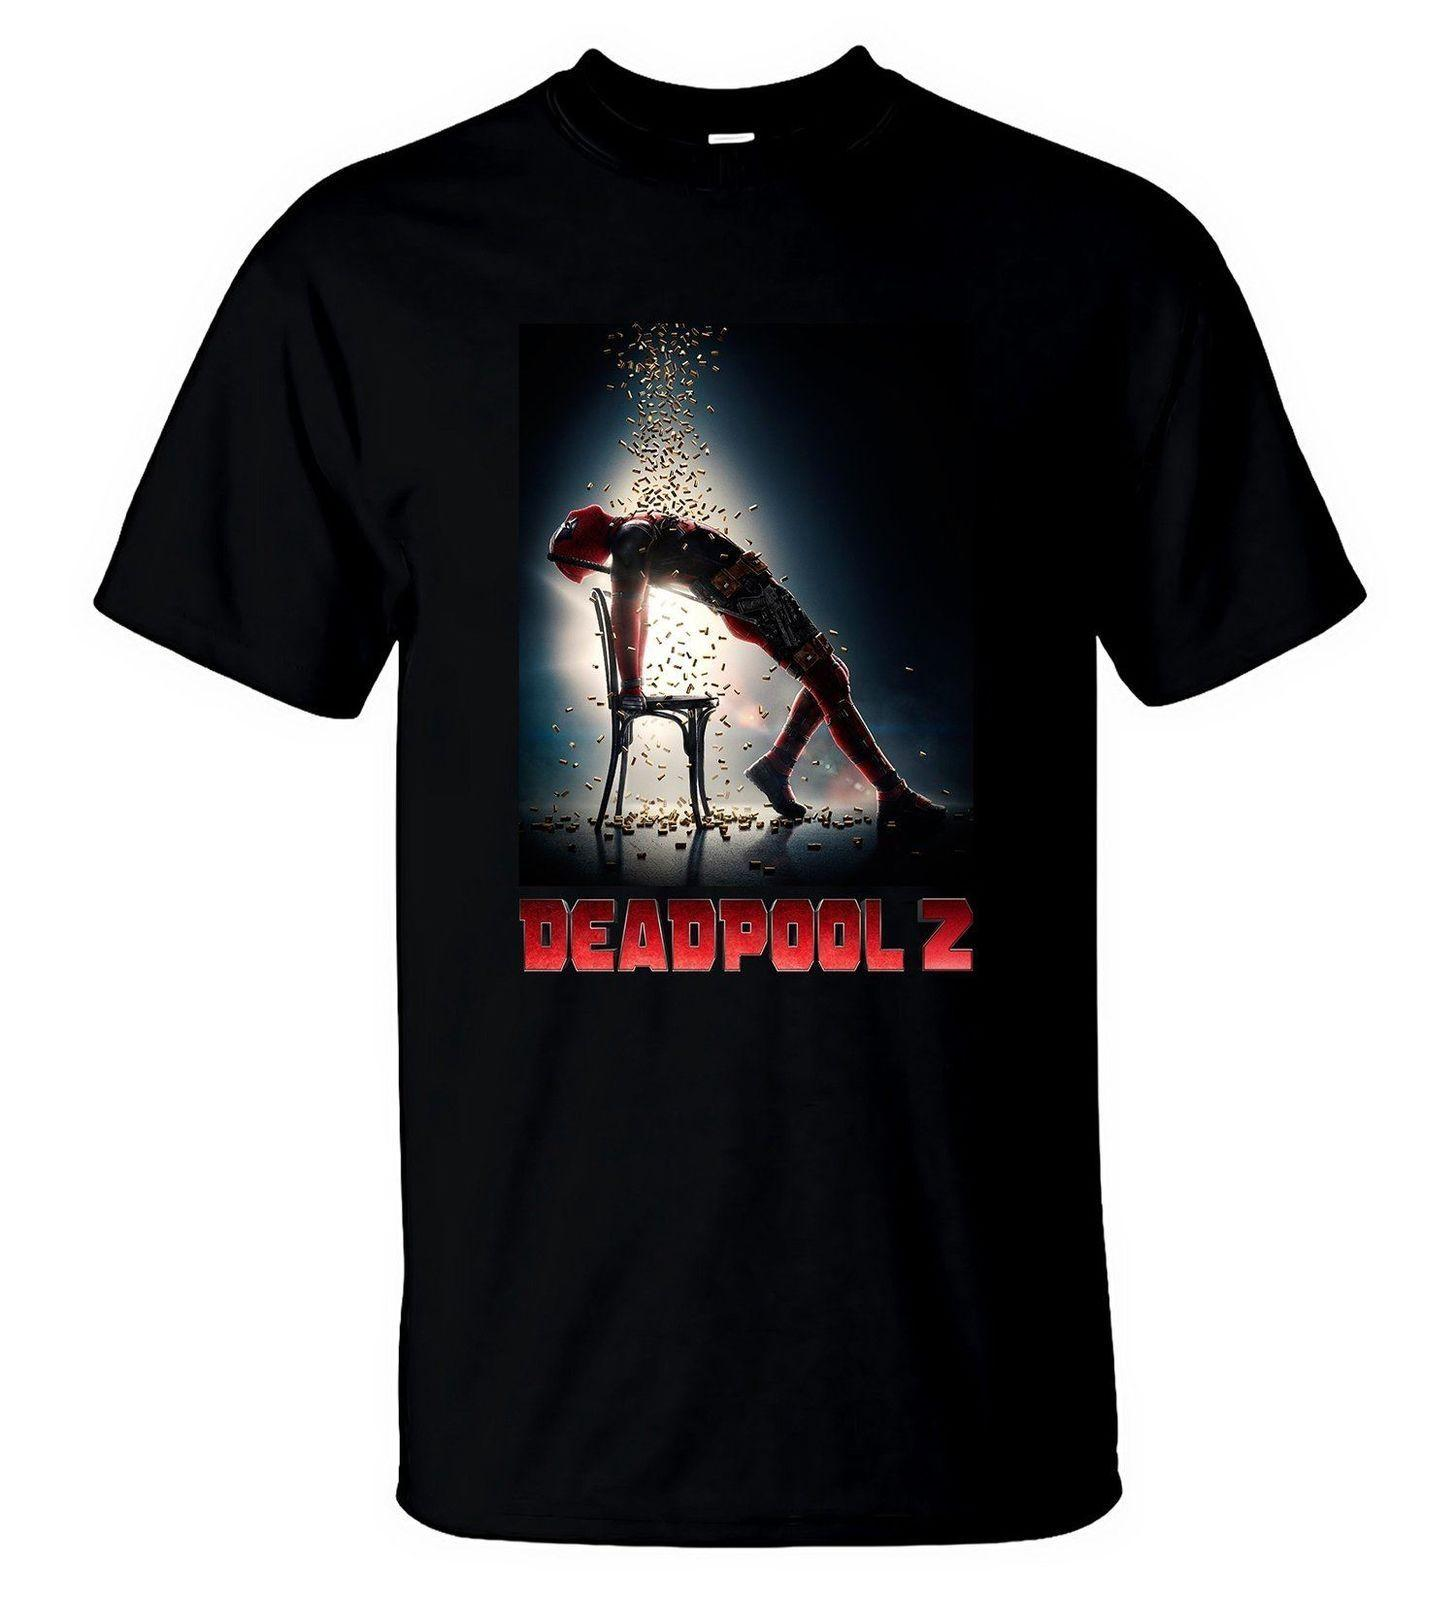 Deadpool 2 T-Shirt New Marvel Movie 2018 T-Shirt Herren Schwarz M L 234XL F056 Cooles lässiges Stolz-T-Shirt